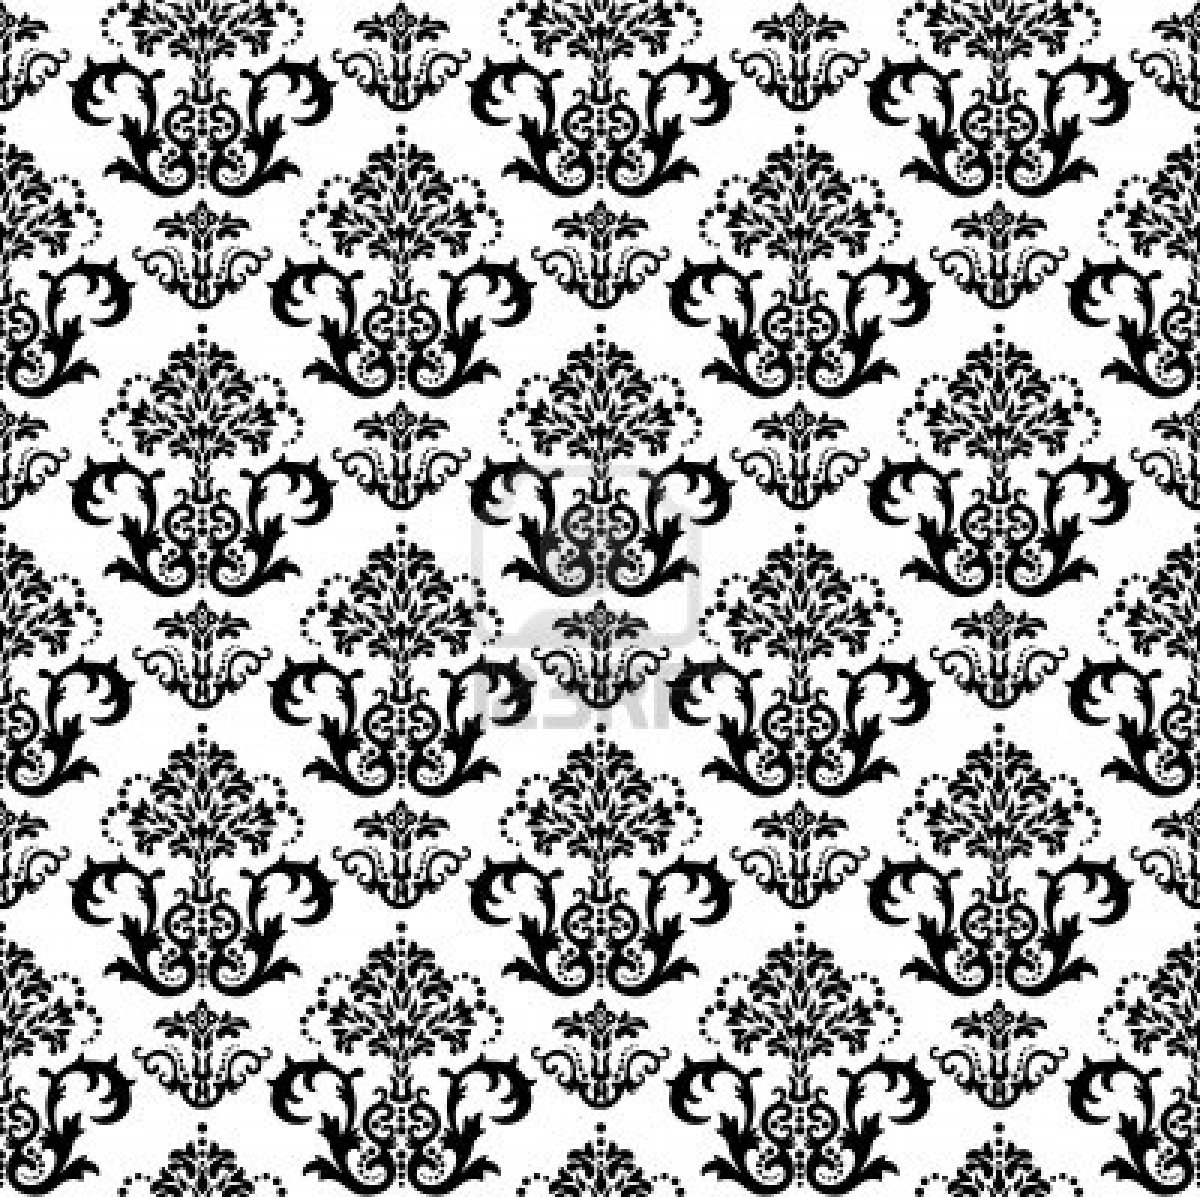 Black And Gold Damask Wallpaper Seamless black and white 1200x1197